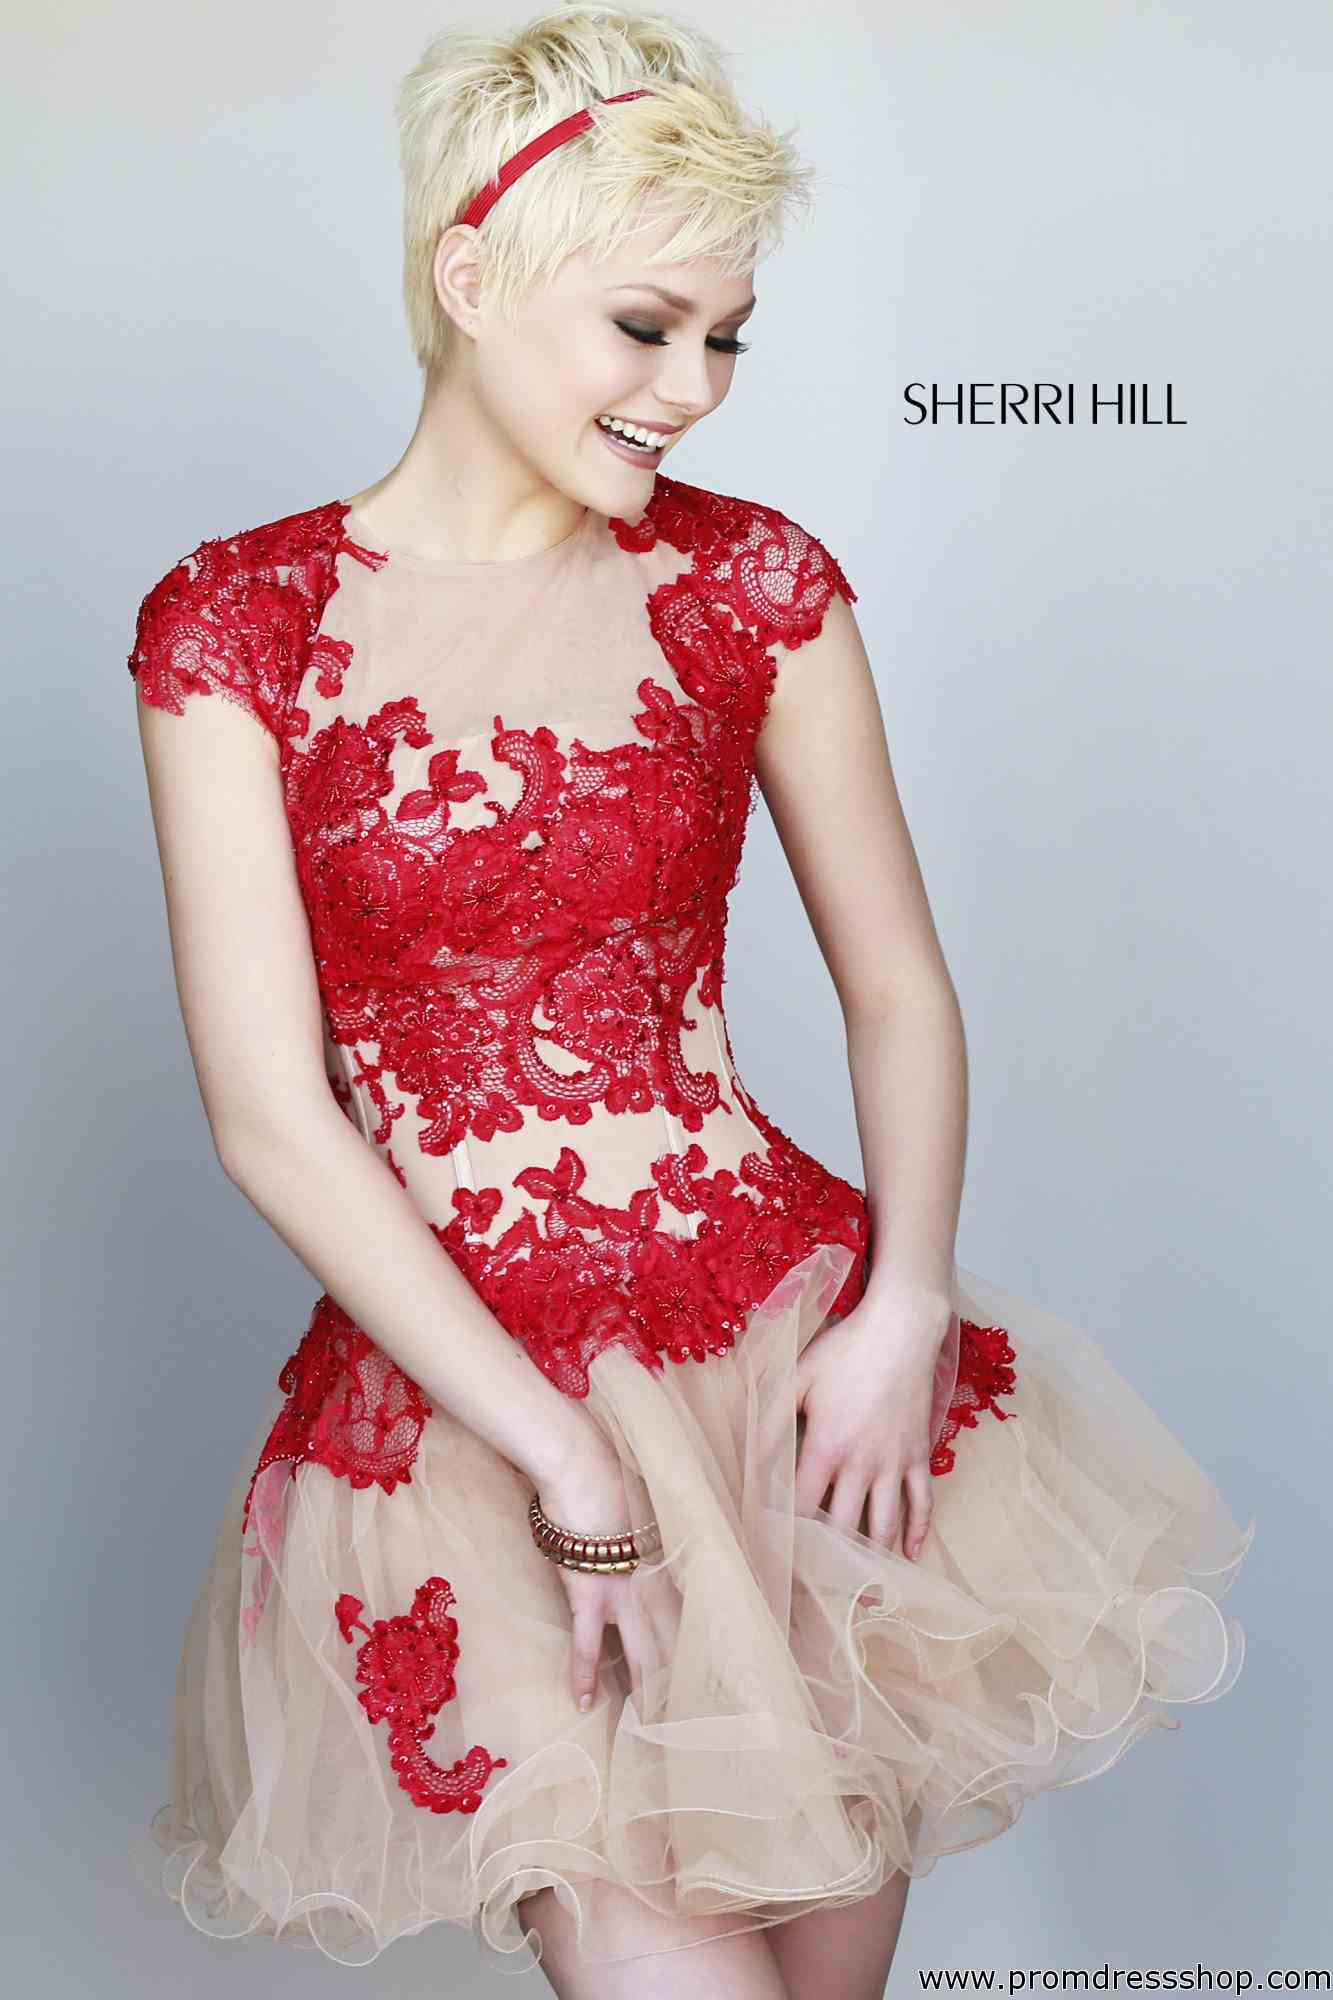 Sherri Hill Short Dress 11153 at Prom Dress Shop